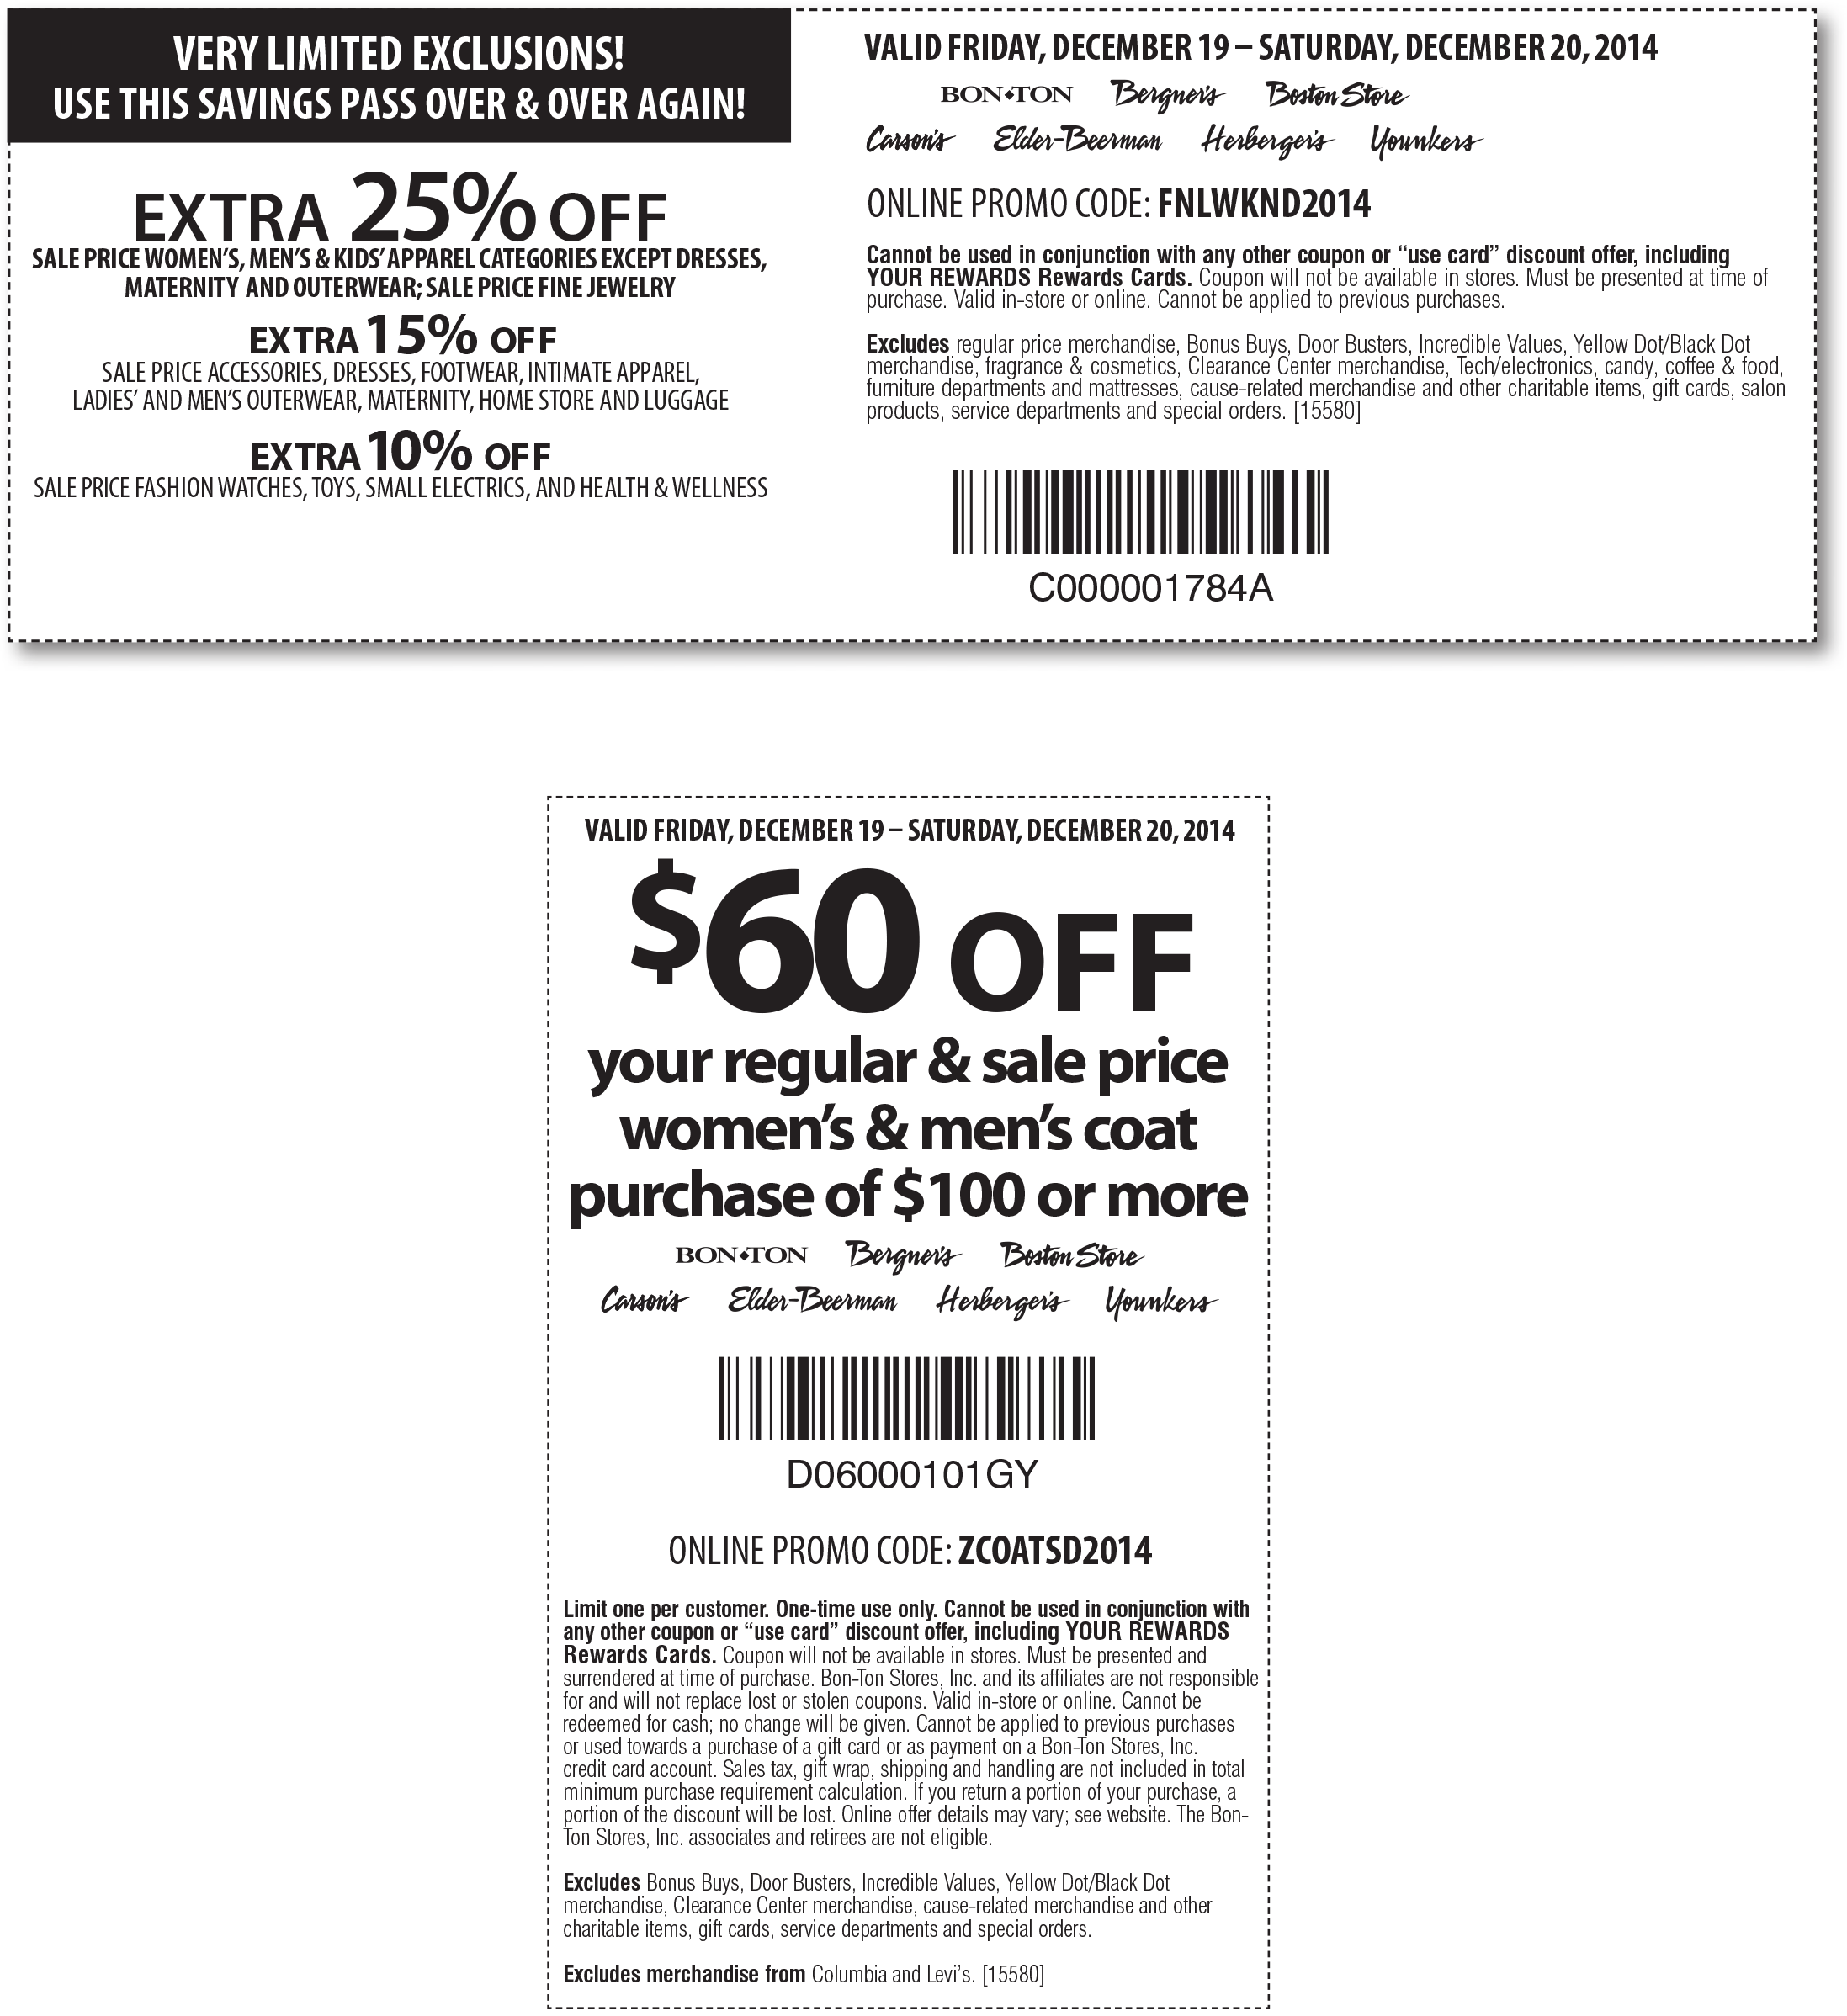 Carsons Coupon August 2018 Extra 25% off sale apparel today at Carsons, Bon Ton & sister stores, or online via promo code FNLWKND2014